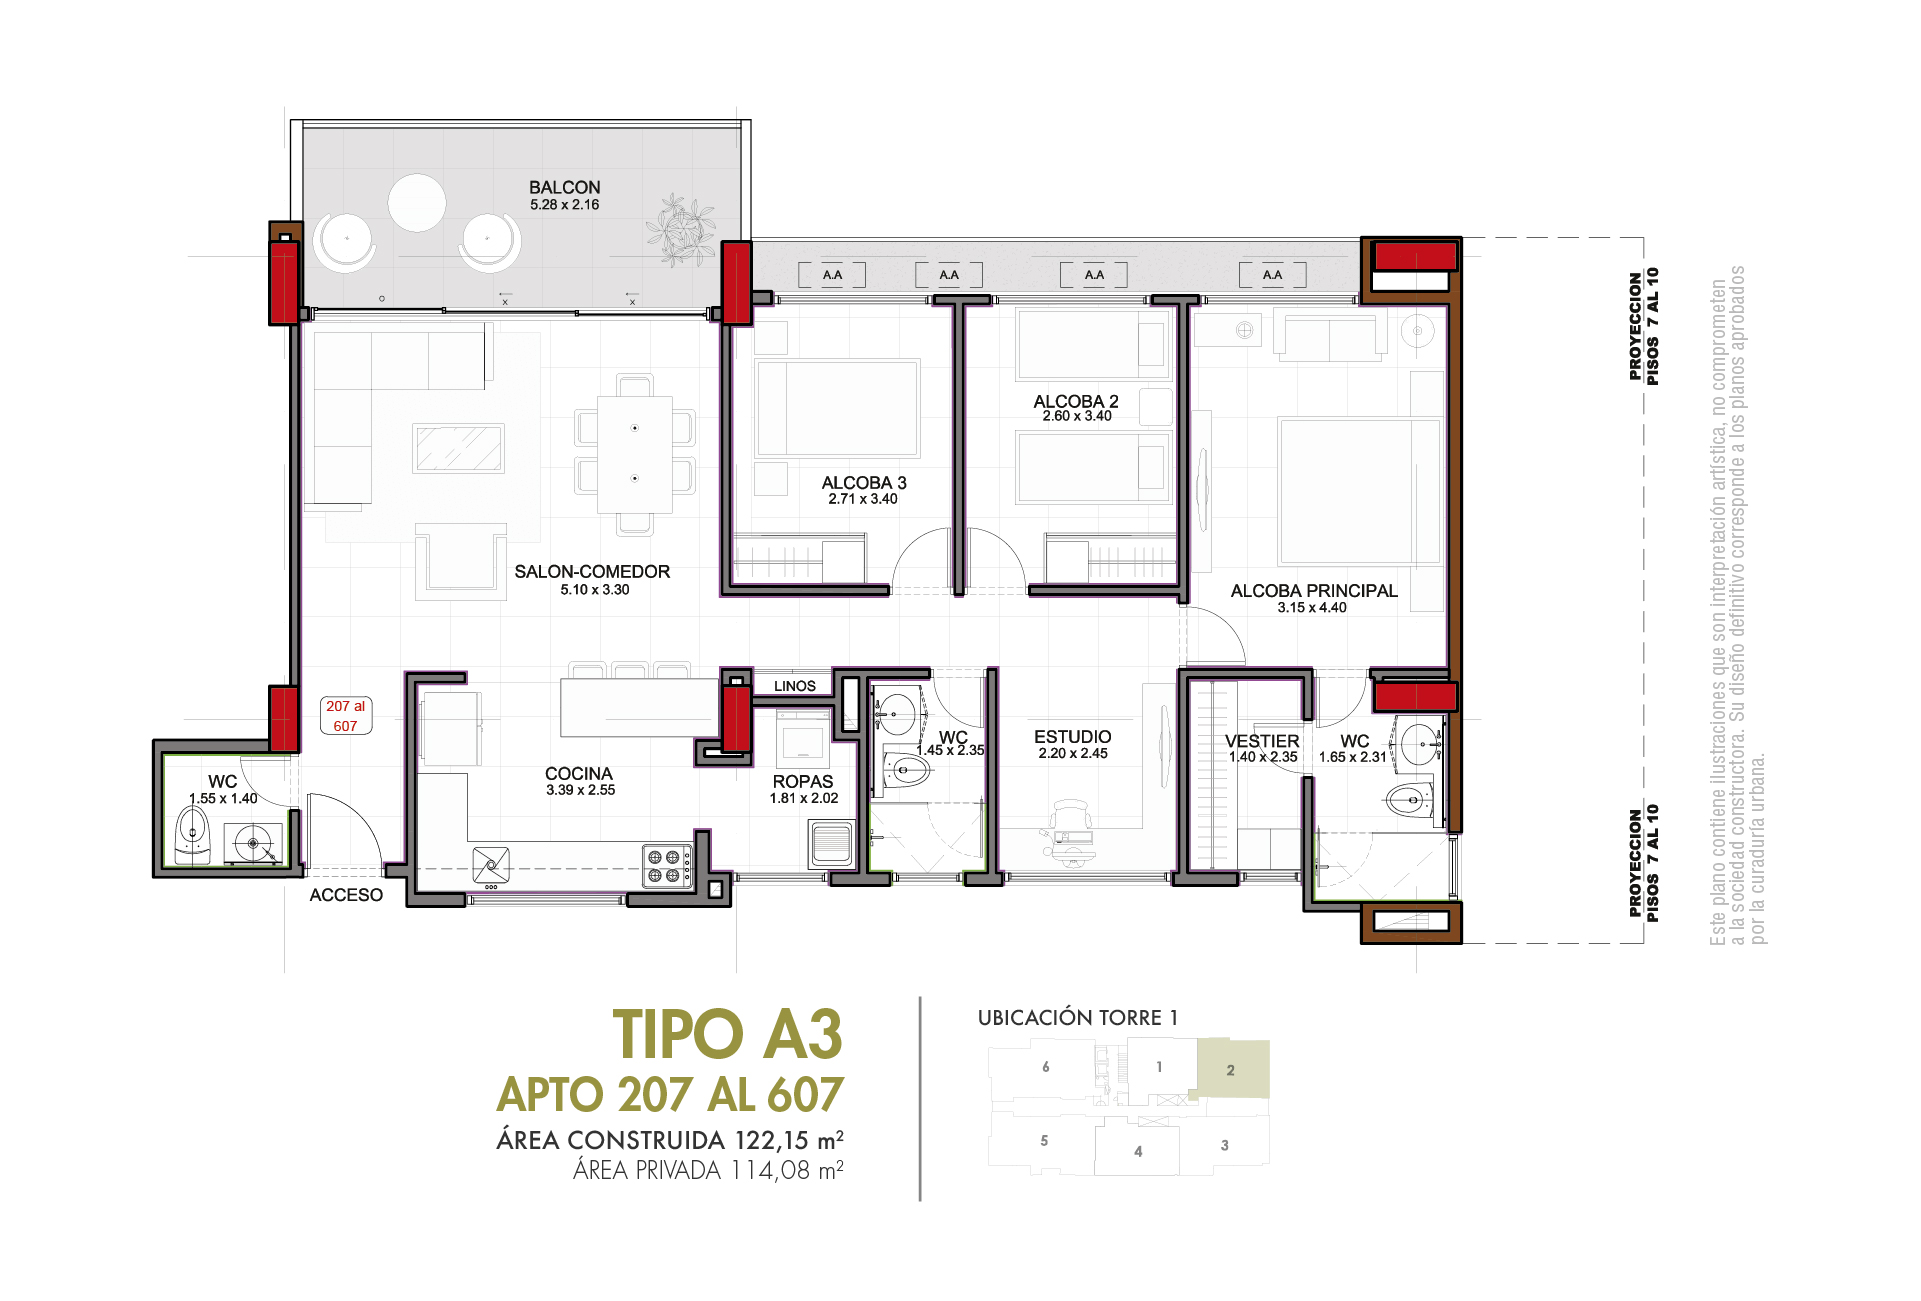 Tipo A3 114,08 m2